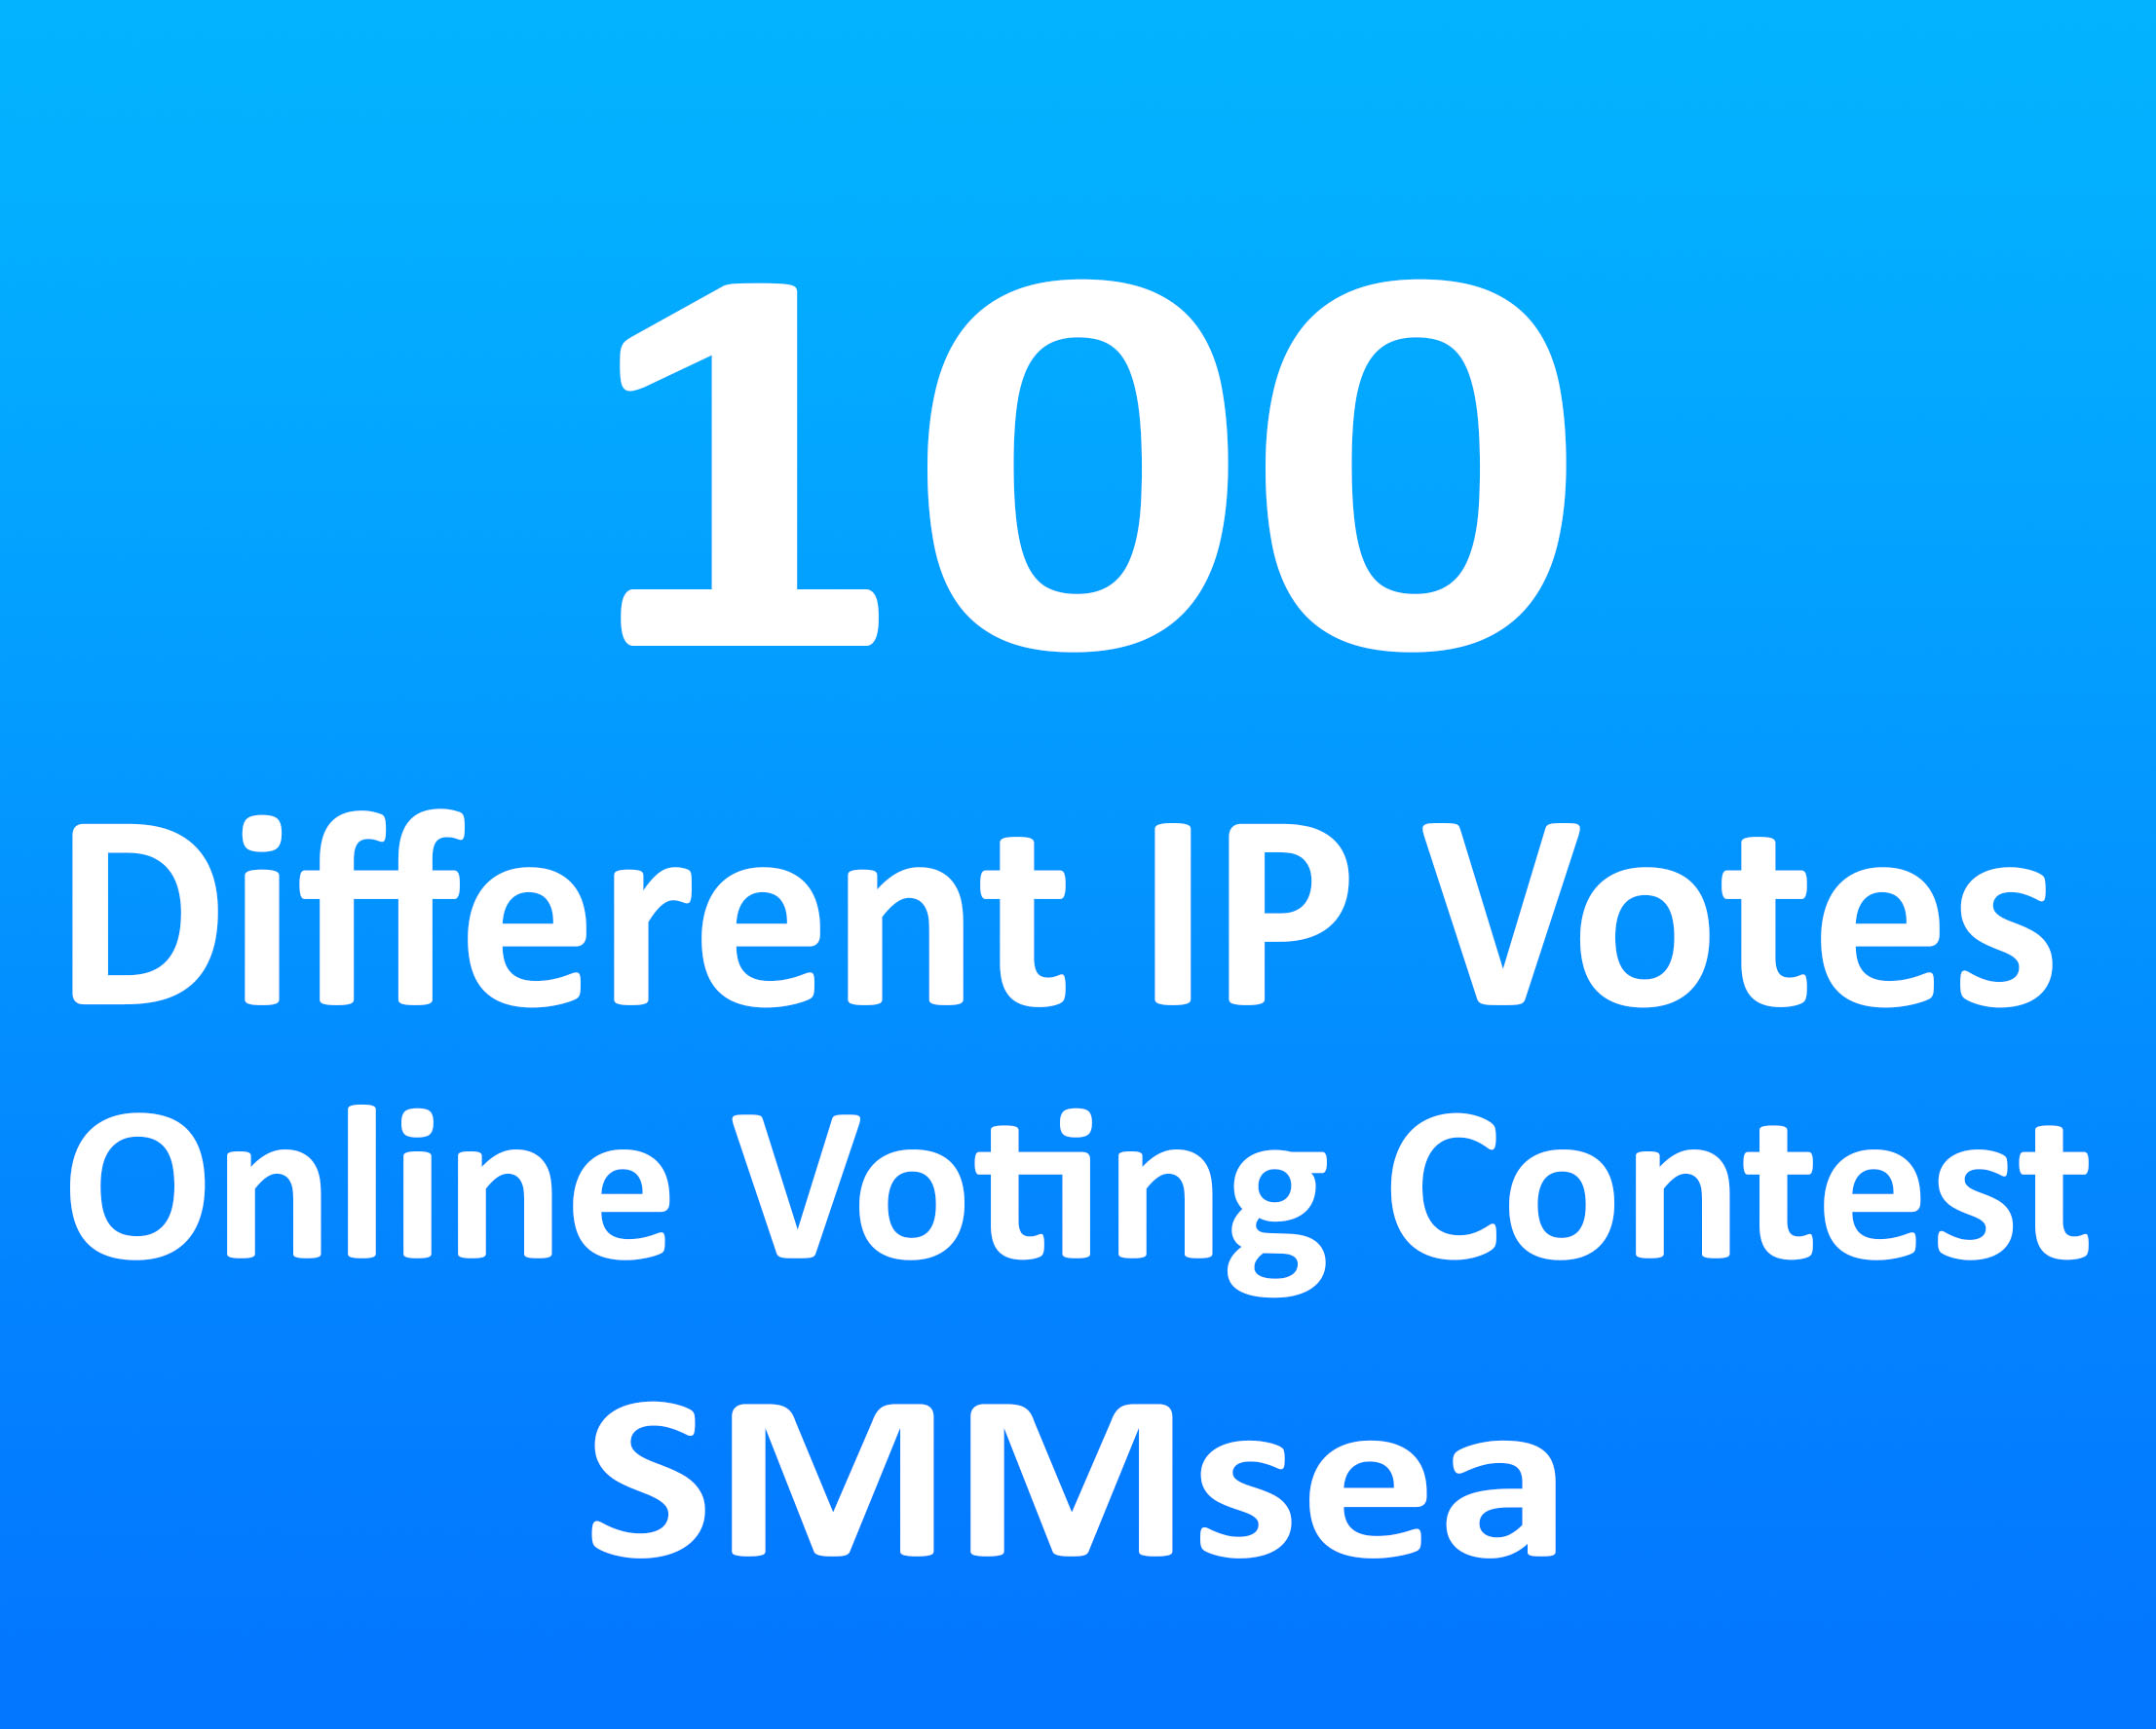 Give 100 Different IP Votes For Any Online Voting Contest